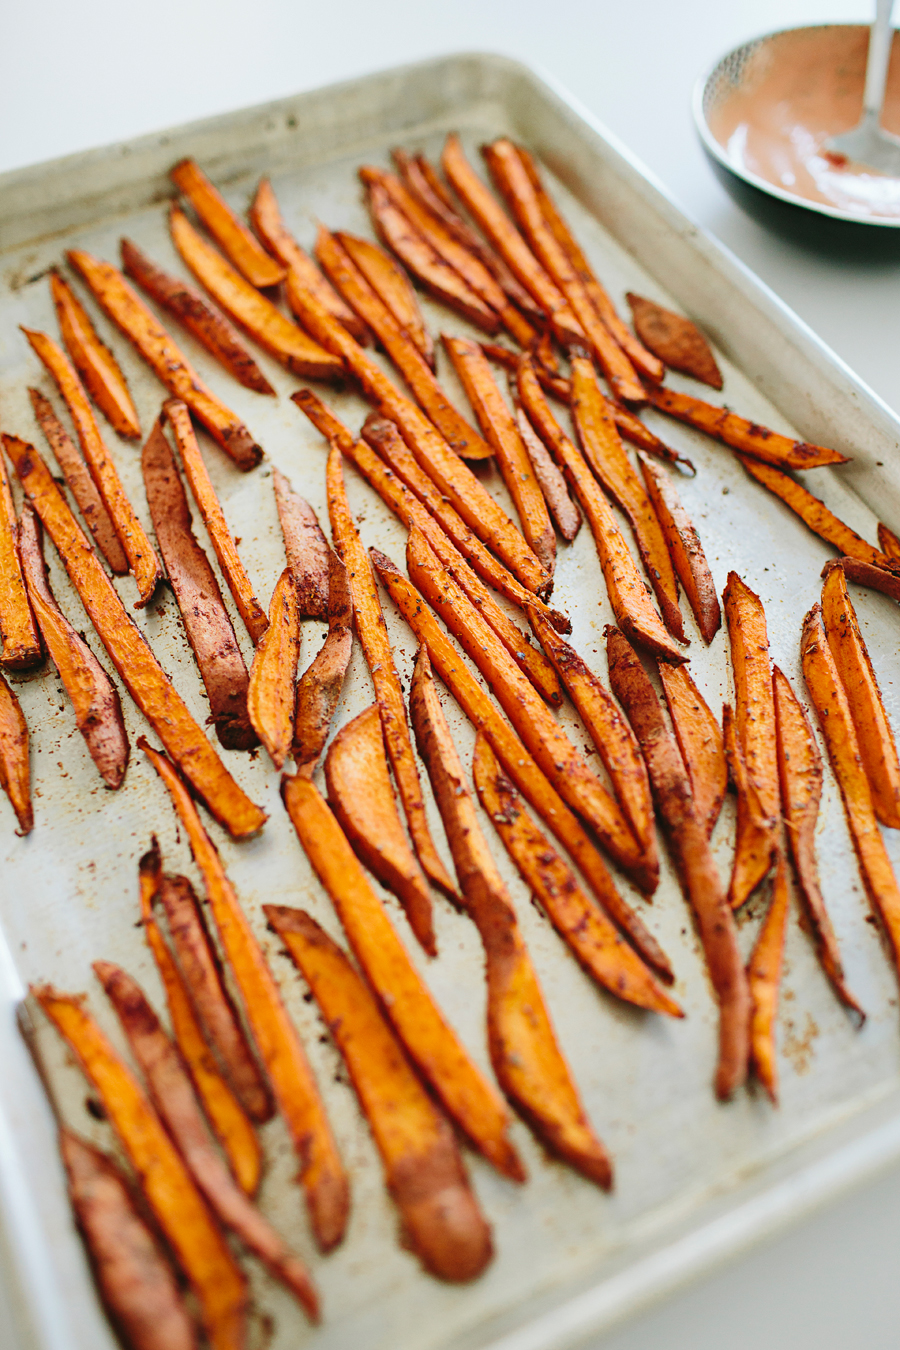 brookecourtney_sweetpotatofries_ovenbaked_frysauce-16.jpg